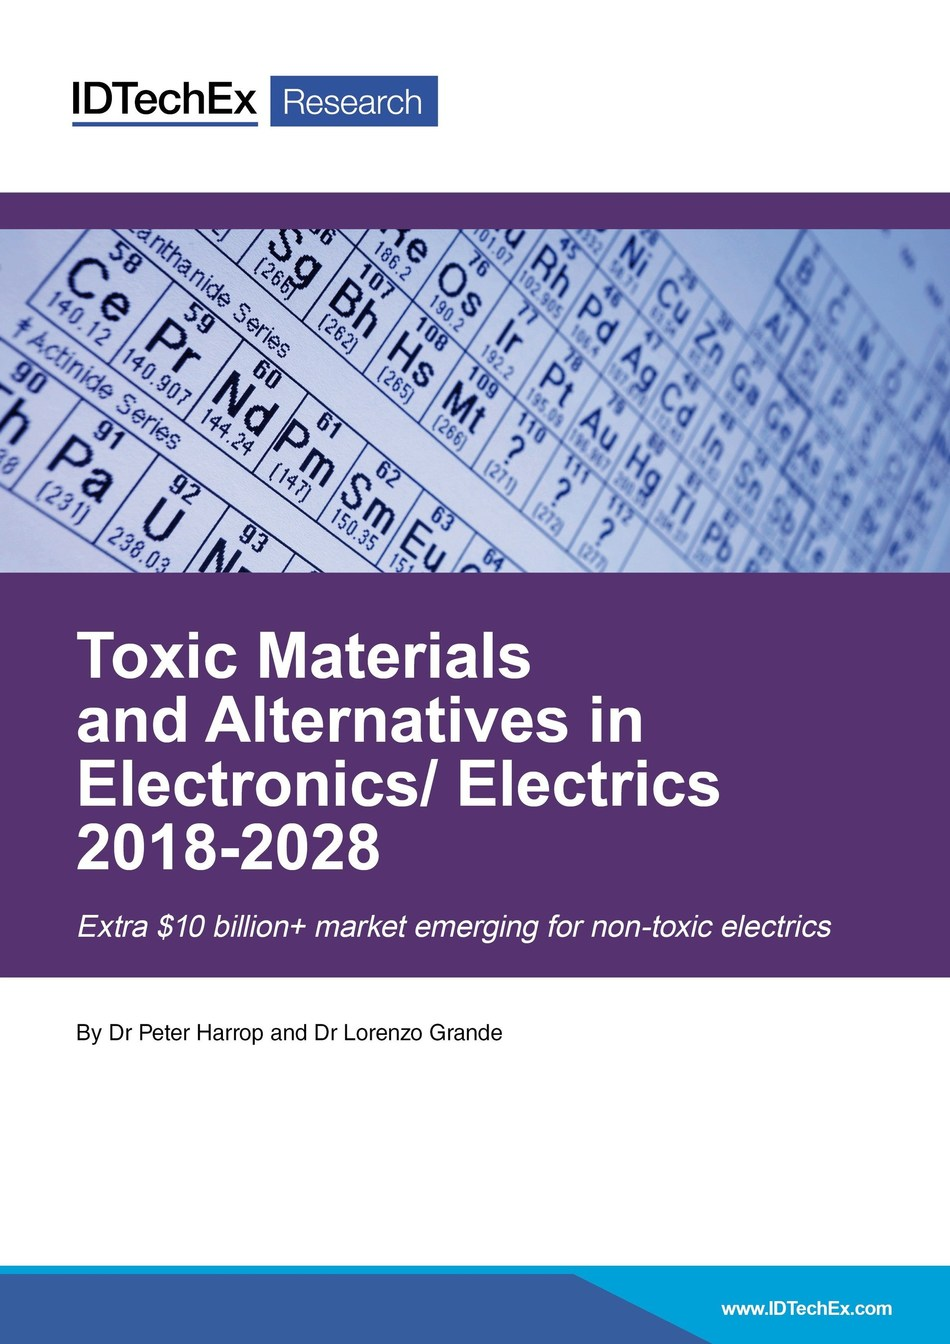 The IDTechEx Research report 'Toxic Materials and Alternatives in Electronics/ Electrics 2018-2028' is the first to track the flood of new electronic and electrical devices introducing toxins, assessing toxicity and likely prevalence (PRNewsfoto/IDTechEx)